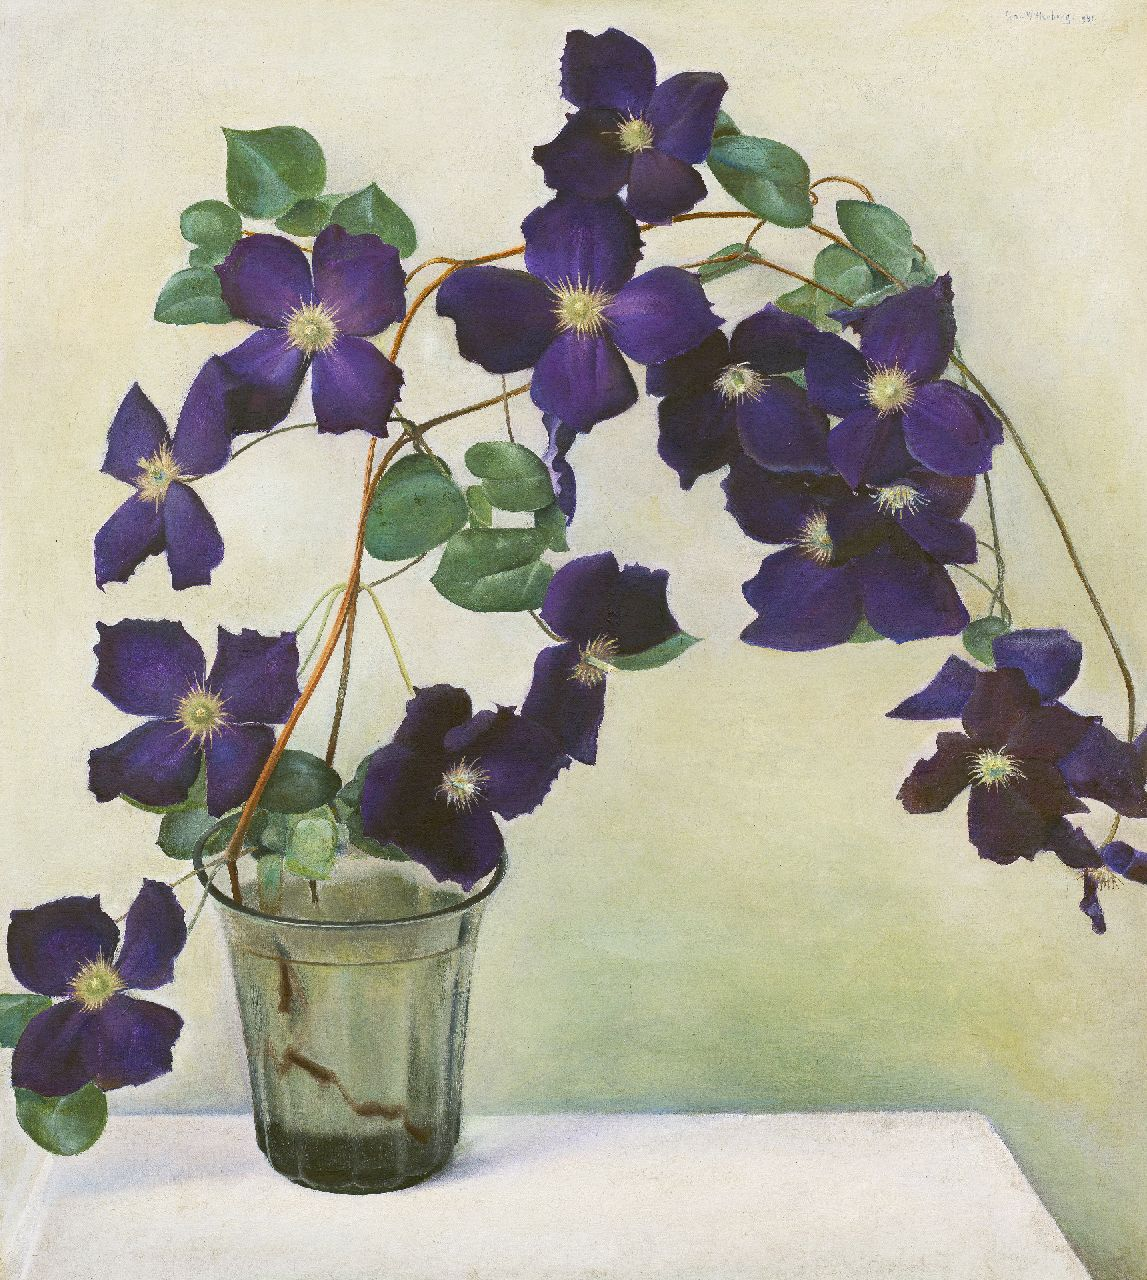 Wittenberg J.H.W.  | 'Jan' Hendrik Willem Wittenberg | Paintings offered for sale | Clematis, oil on canvas 50.6 x 45.4 cm, signed u.r. and dated 1941